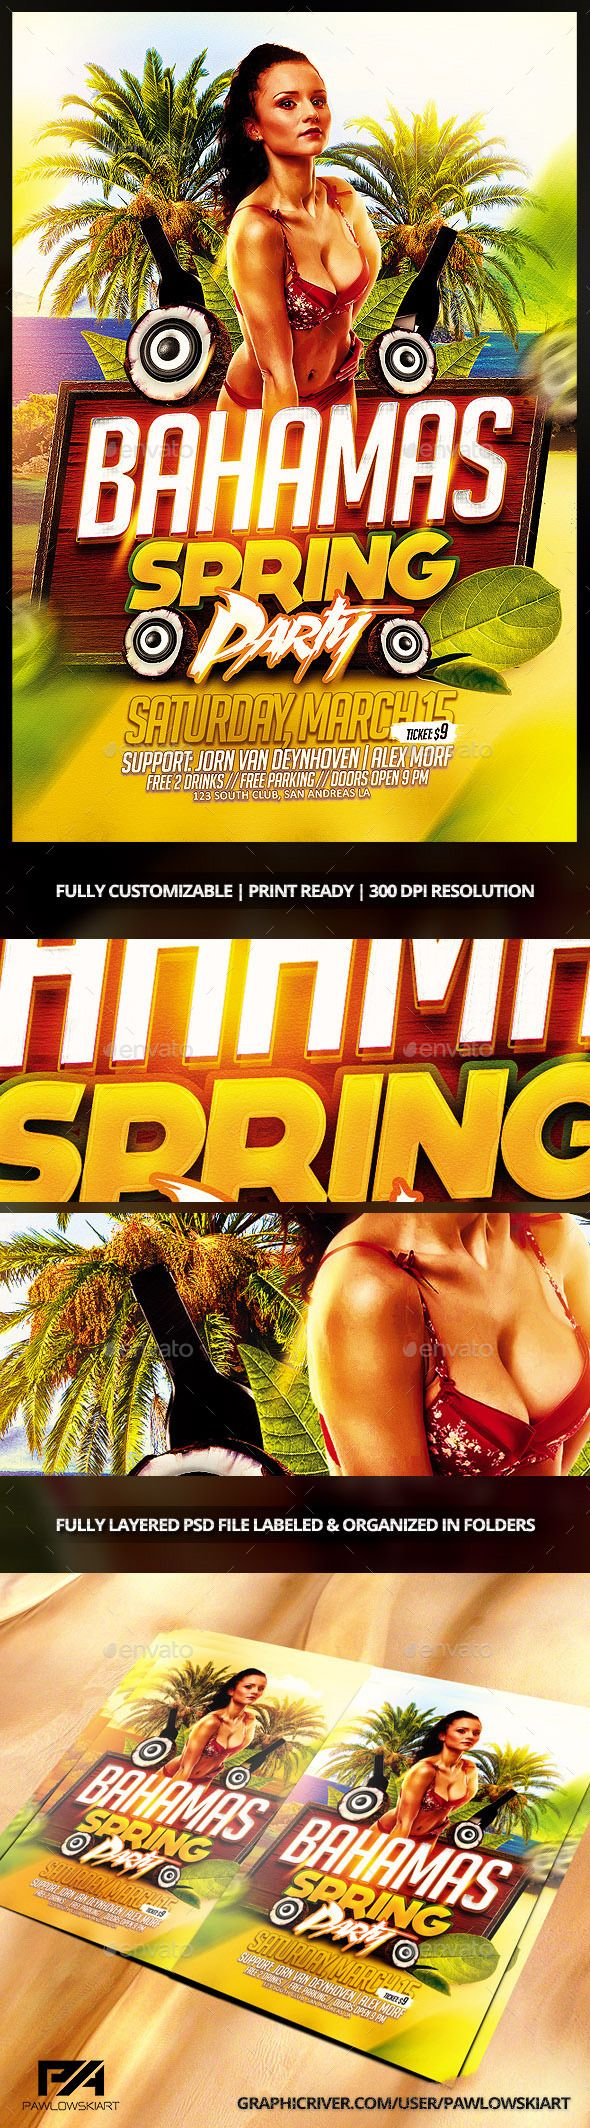 Bahamas Spring Party Flyer Template - Events Flyers